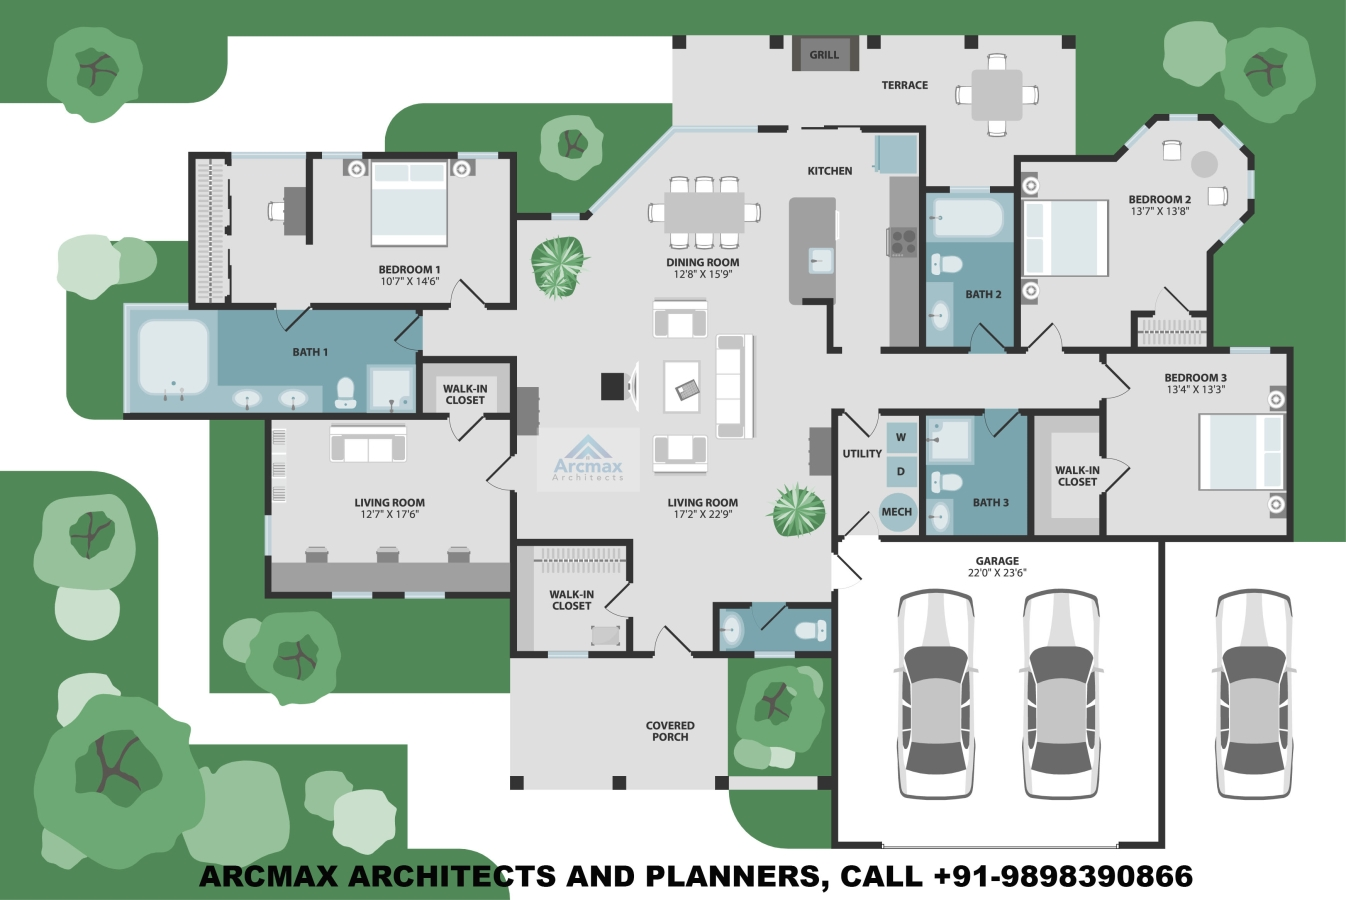 best architect for row house plans and group housing design in india rh arcmaxarchitect com